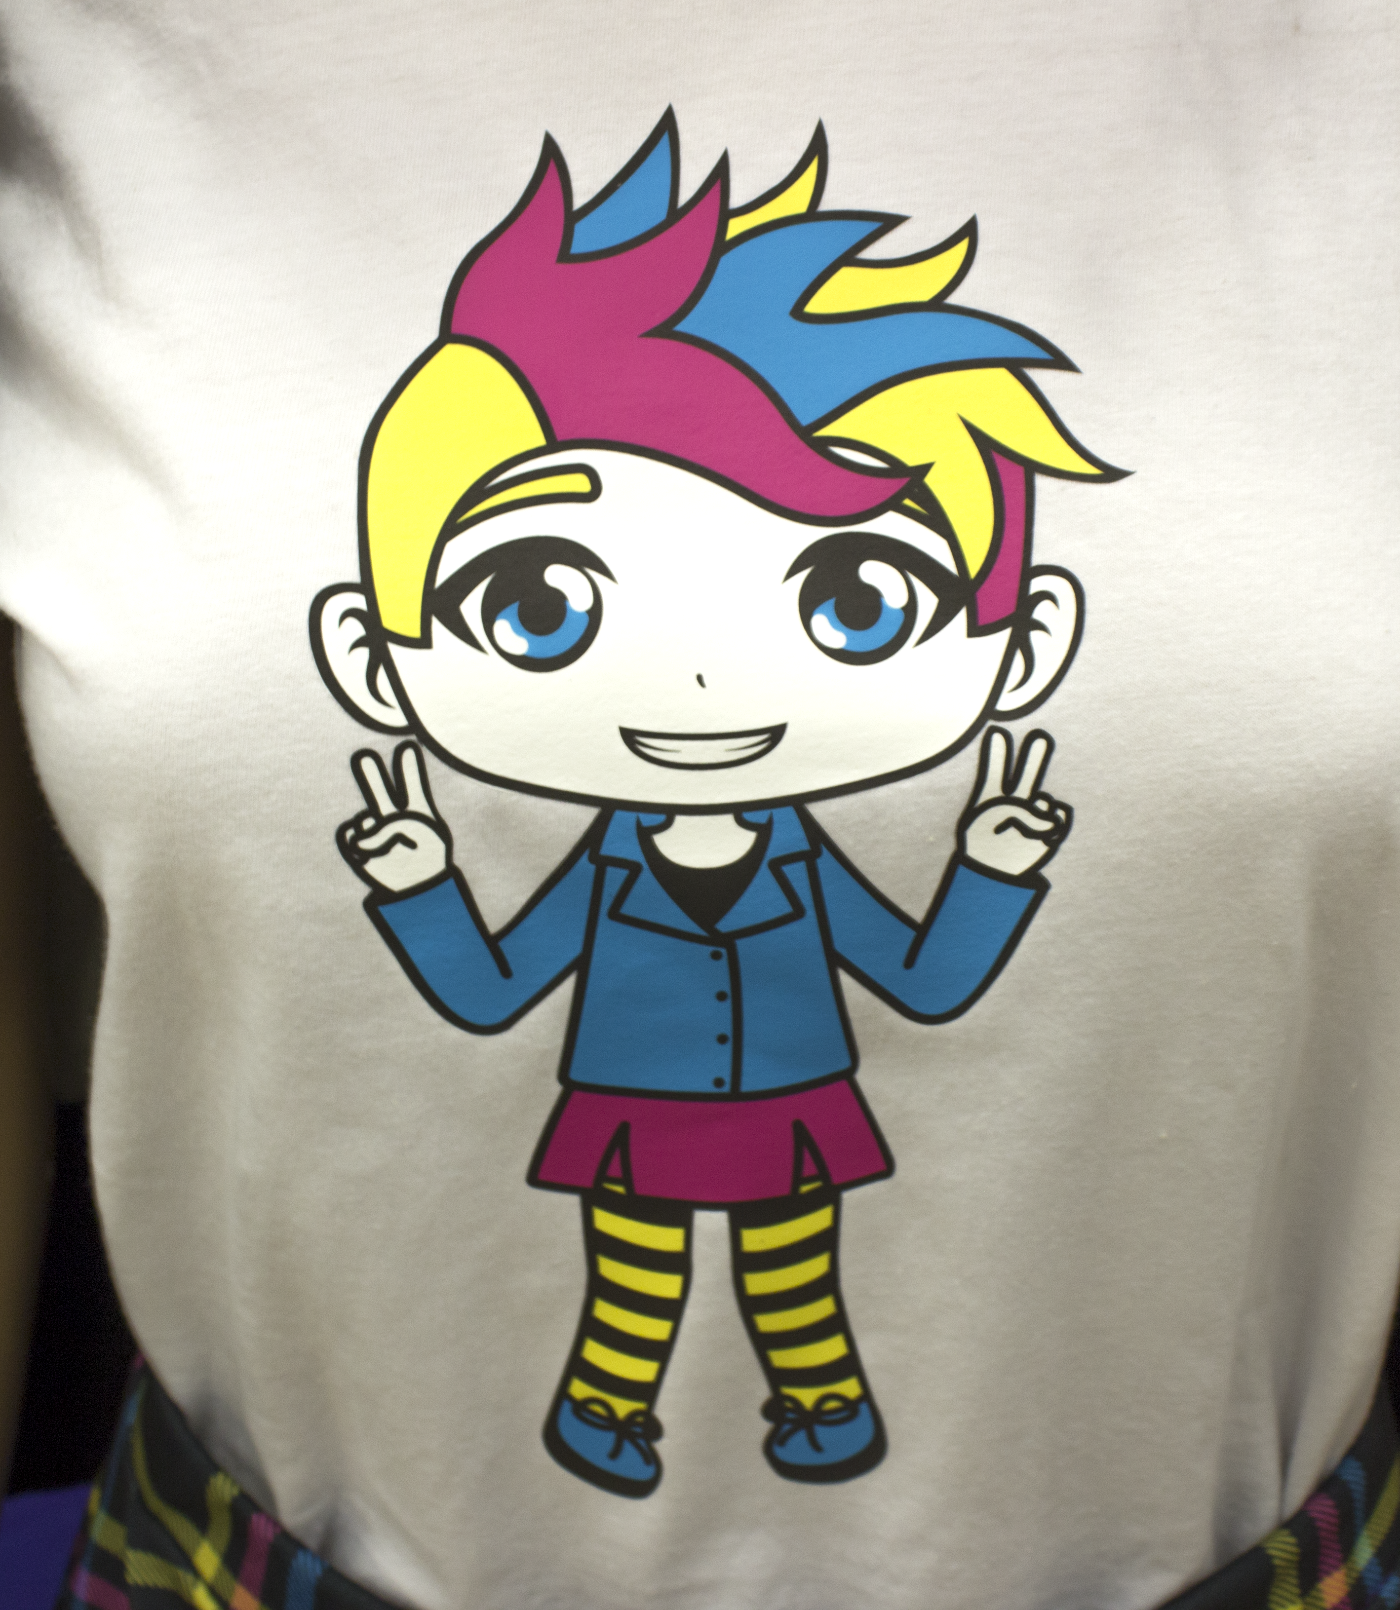 A punk girl was chosen for the illustration to create a sense of rebellion, which can also be seen through the loud color palette. This set of colors also connects to print as they are the primary colors used in the printing process. In the case of the top, the illustration was printed onto vinyl, cut, and transferred to the fabric by the  ASU Print Lab .